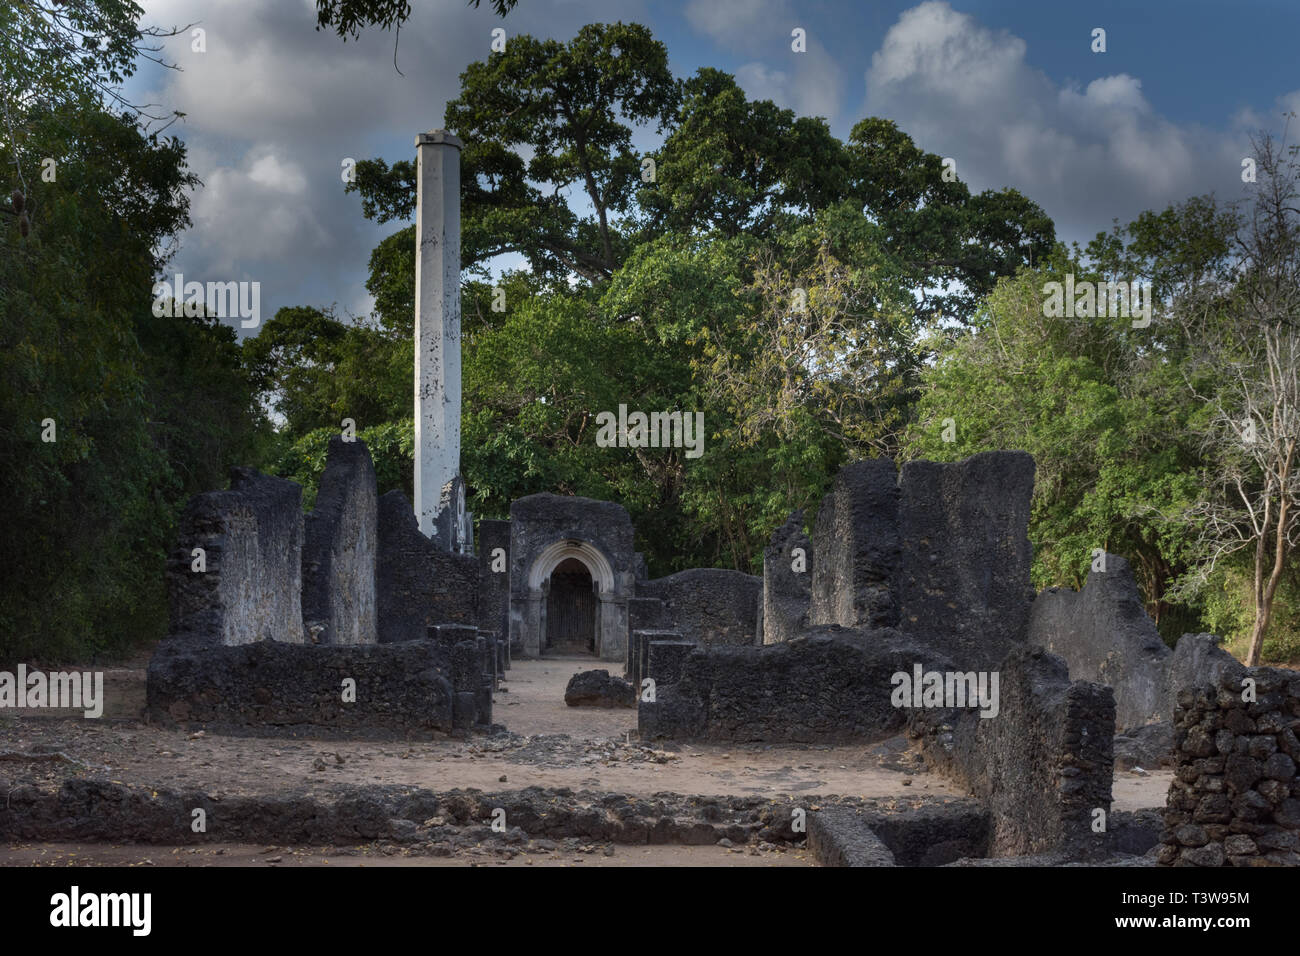 Gede coastal town Kenya from 14th to the 17th century. - Stock Image